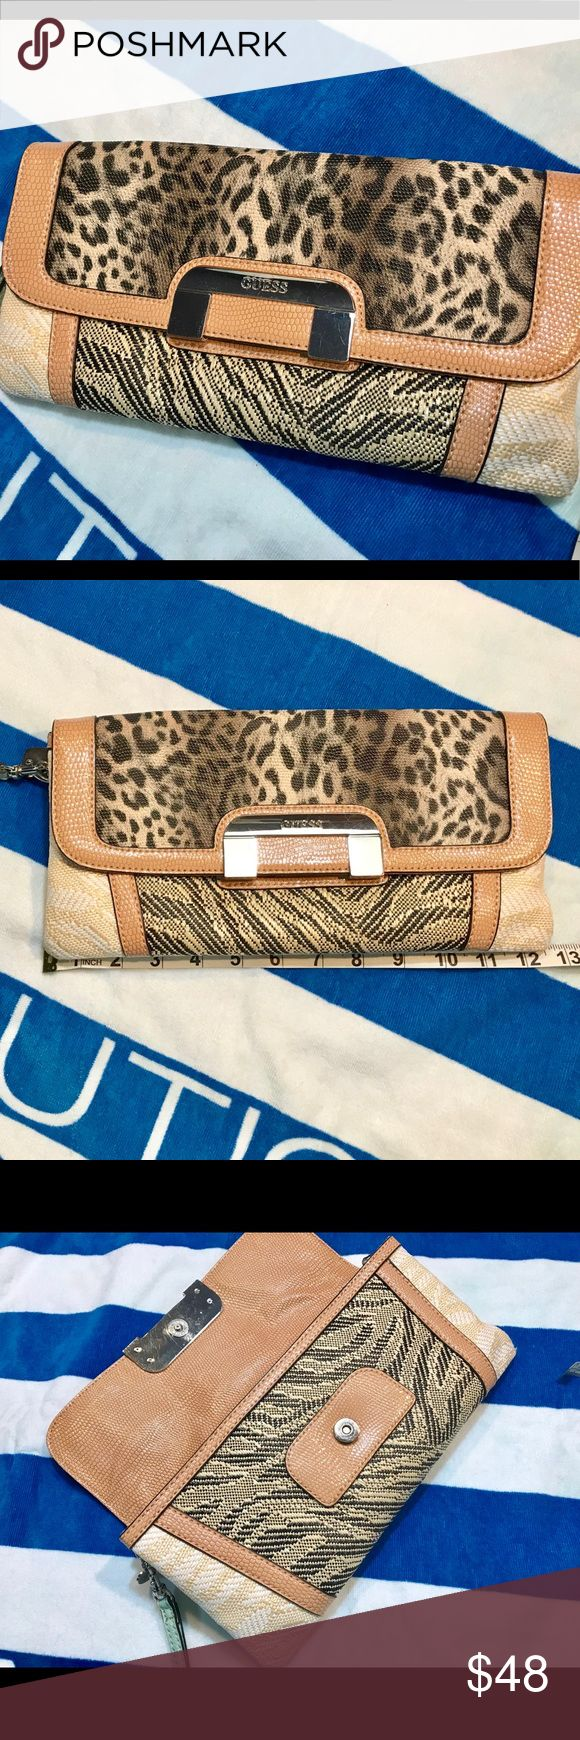 Super Cute Unique Guess Clutch! New Guess clutch super cute! Have a great day and feed someone along the way! #agodthang #shesagodthang #karenagodthangcumby #love #you Guess Bags Clutches & Wristlets